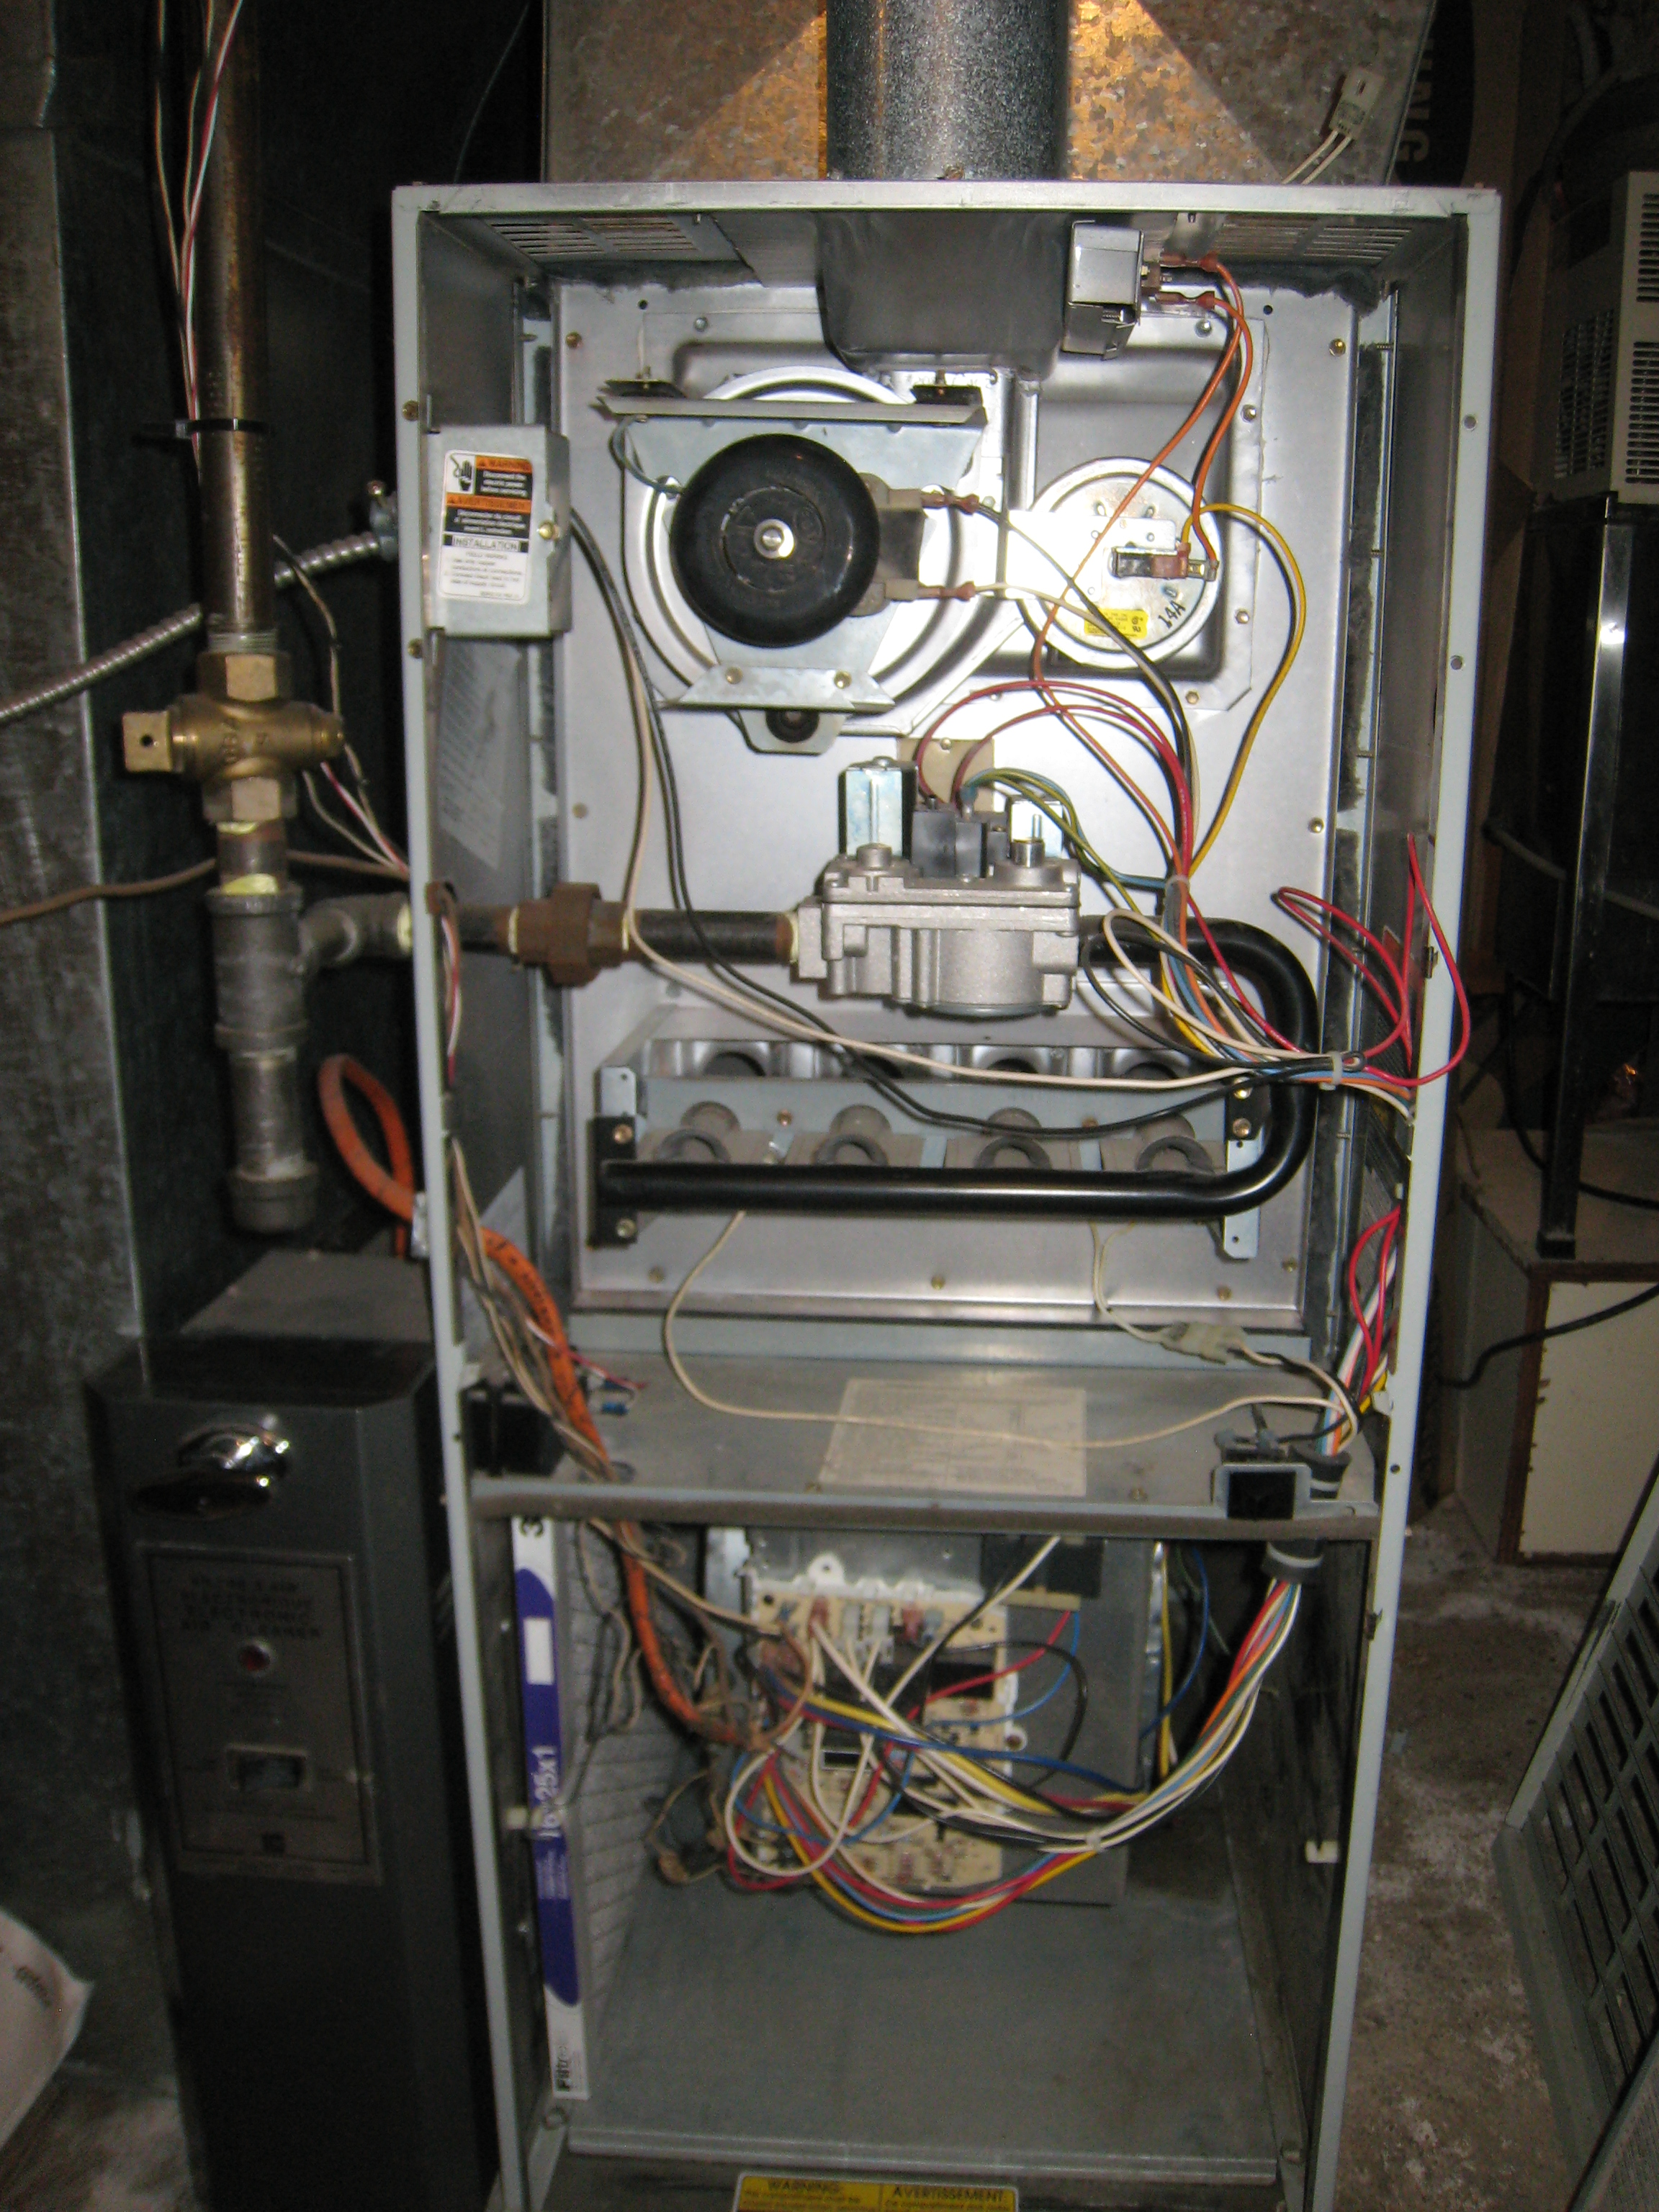 rotor limit switch wiring diagram my carrier furnace is not putting out heat code 13 is ...